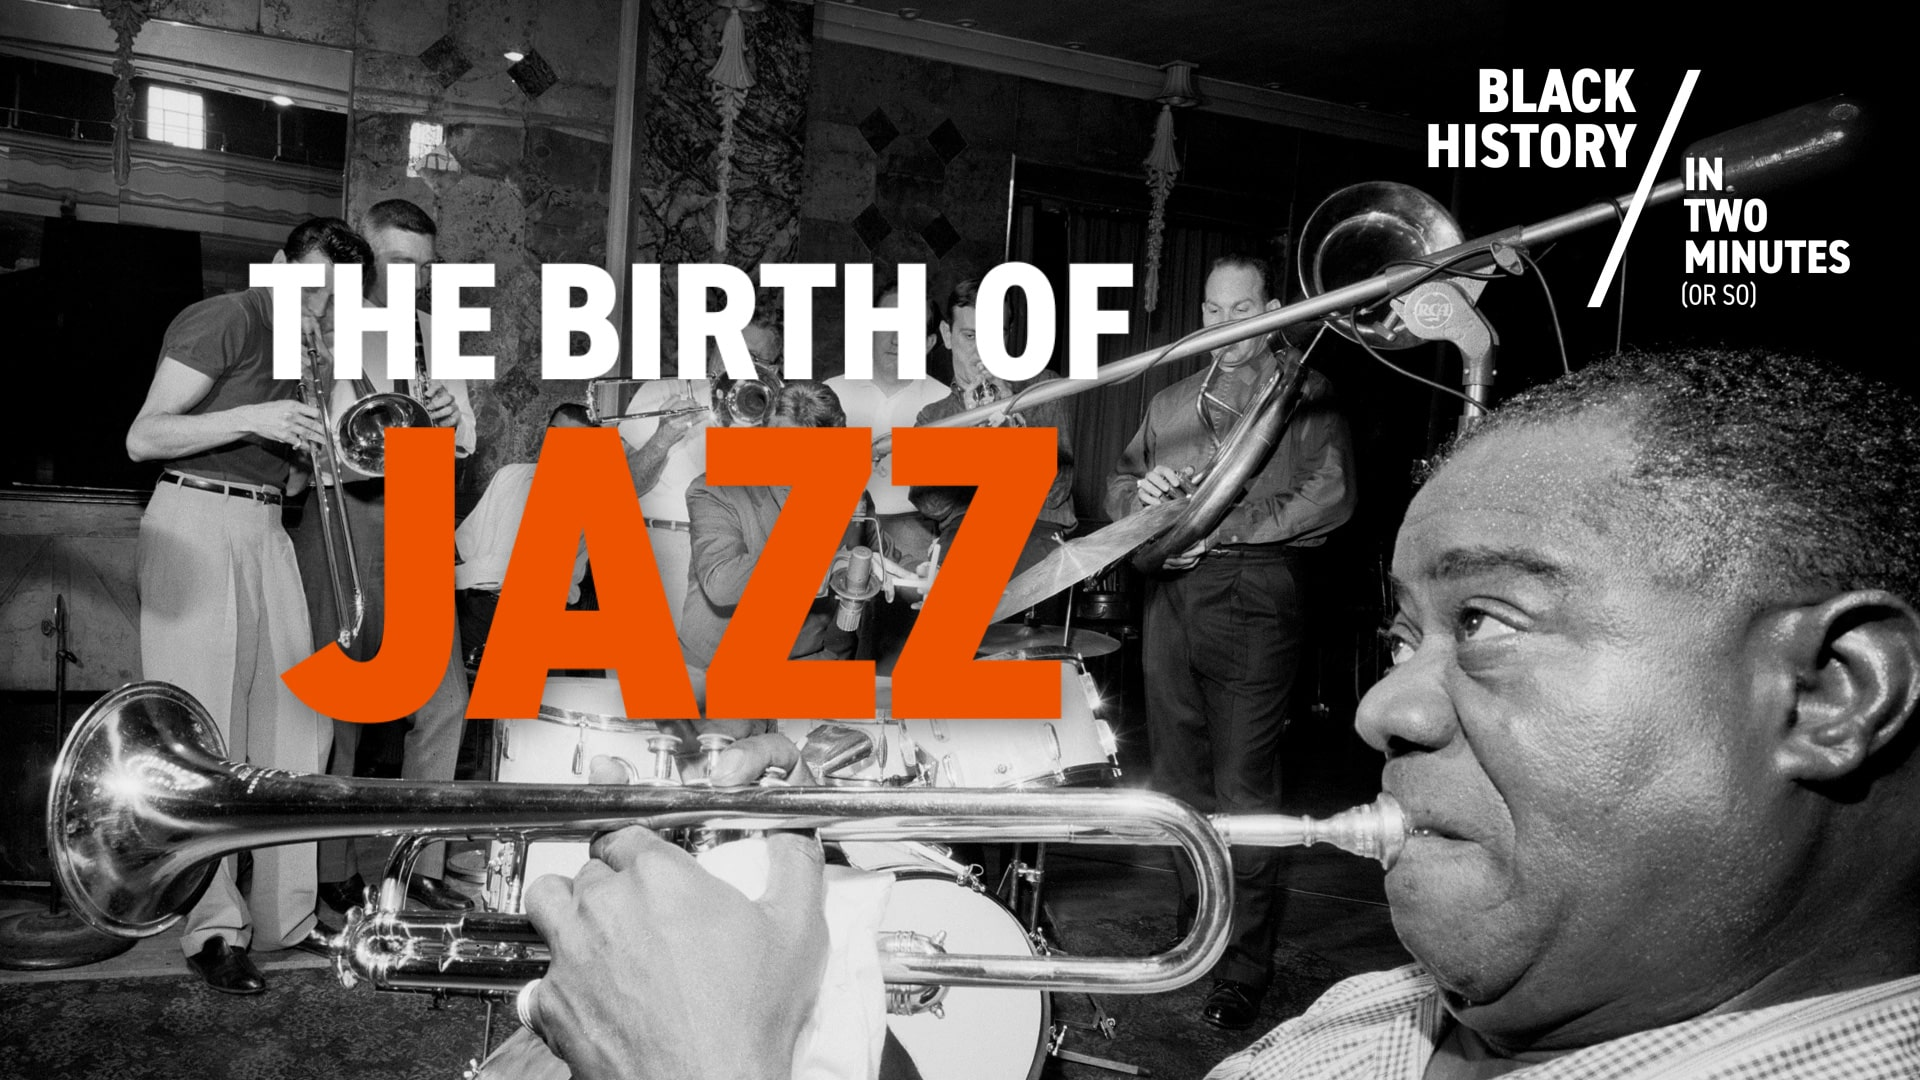 Birth of Jazz | Black History in Two Minutes